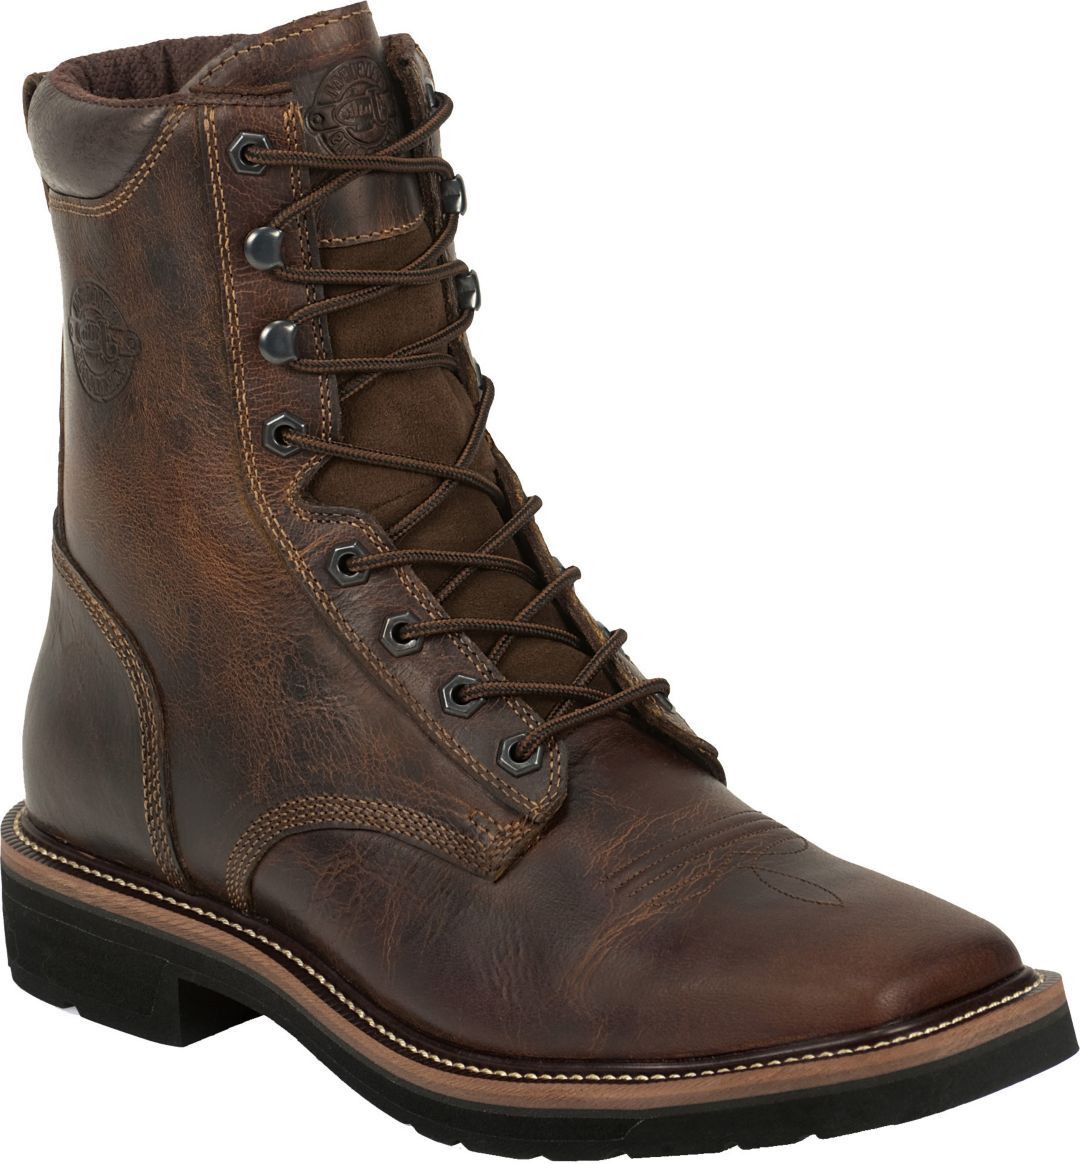 2249fa9ab8f Justin Men's Rugged Tan Stampede Steel Toe Work Boots